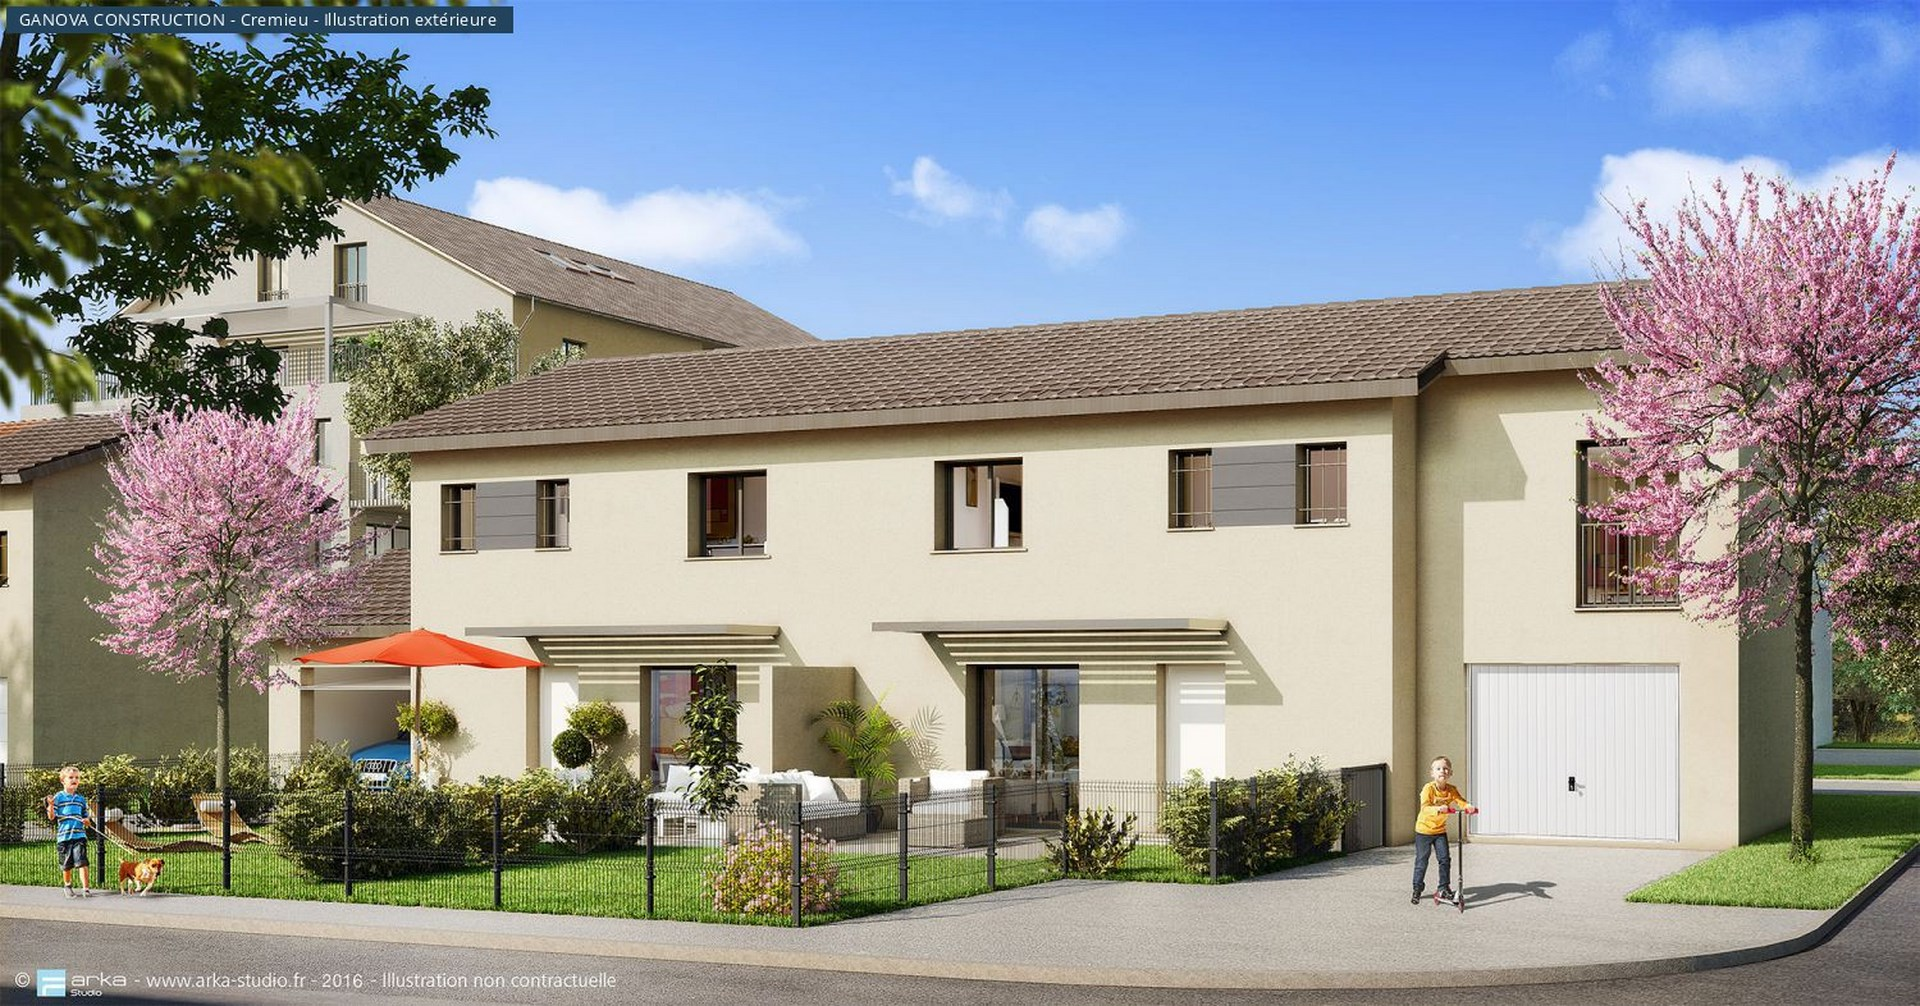 Prix construction maison contemporaine m2 menuiserie for Prix construction petite maison